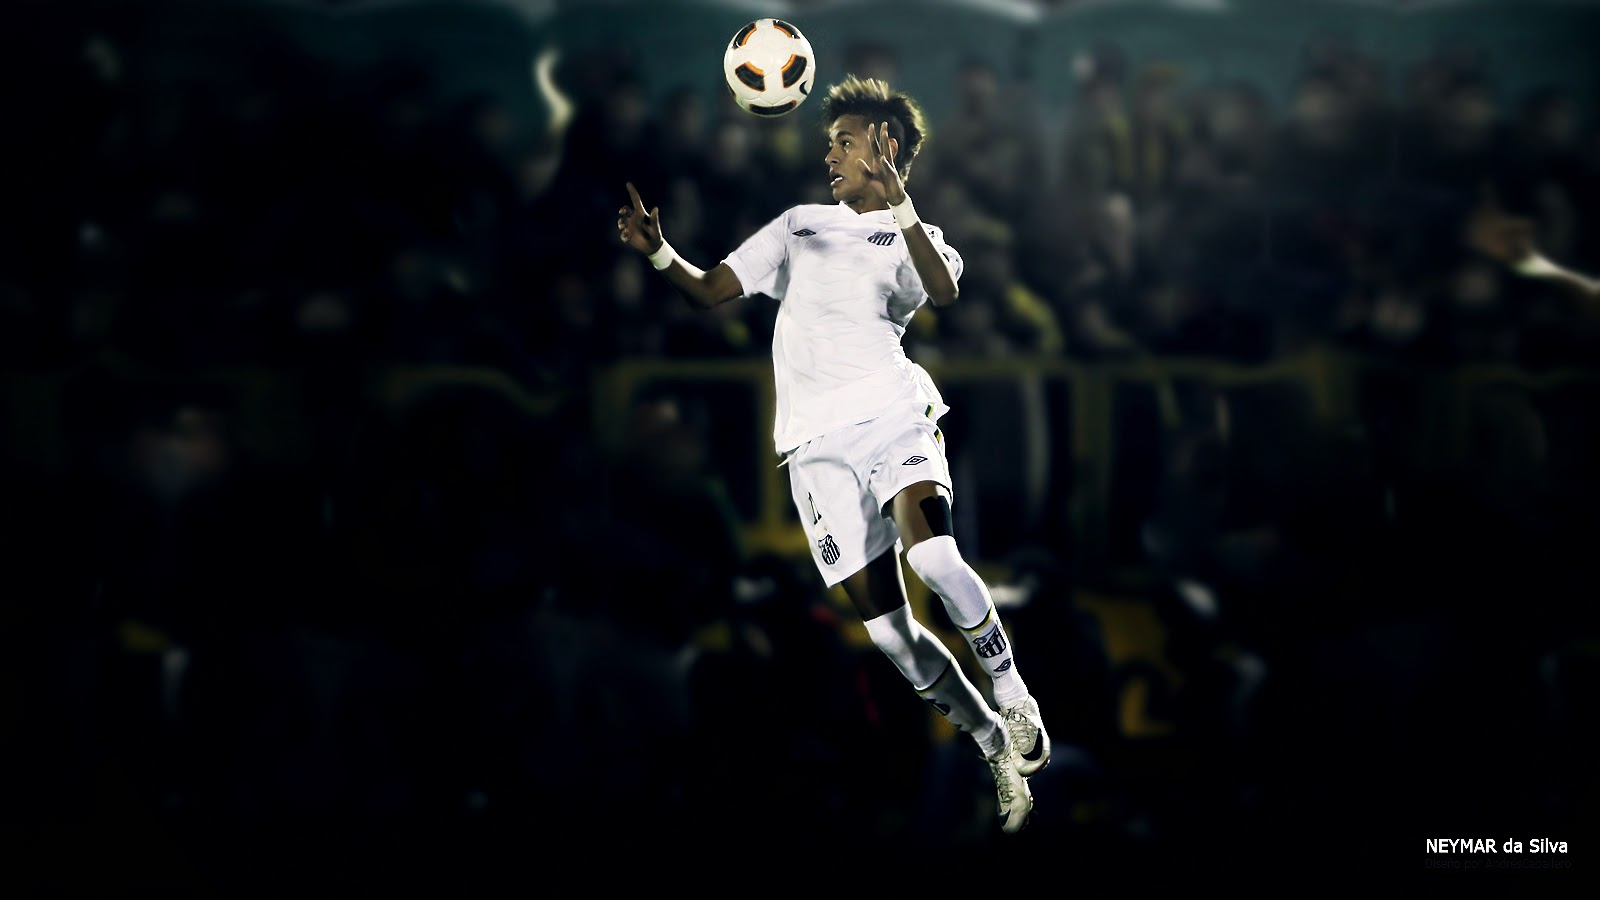 Neymar 2015 wallpaper neymar hd wallpapers 2015